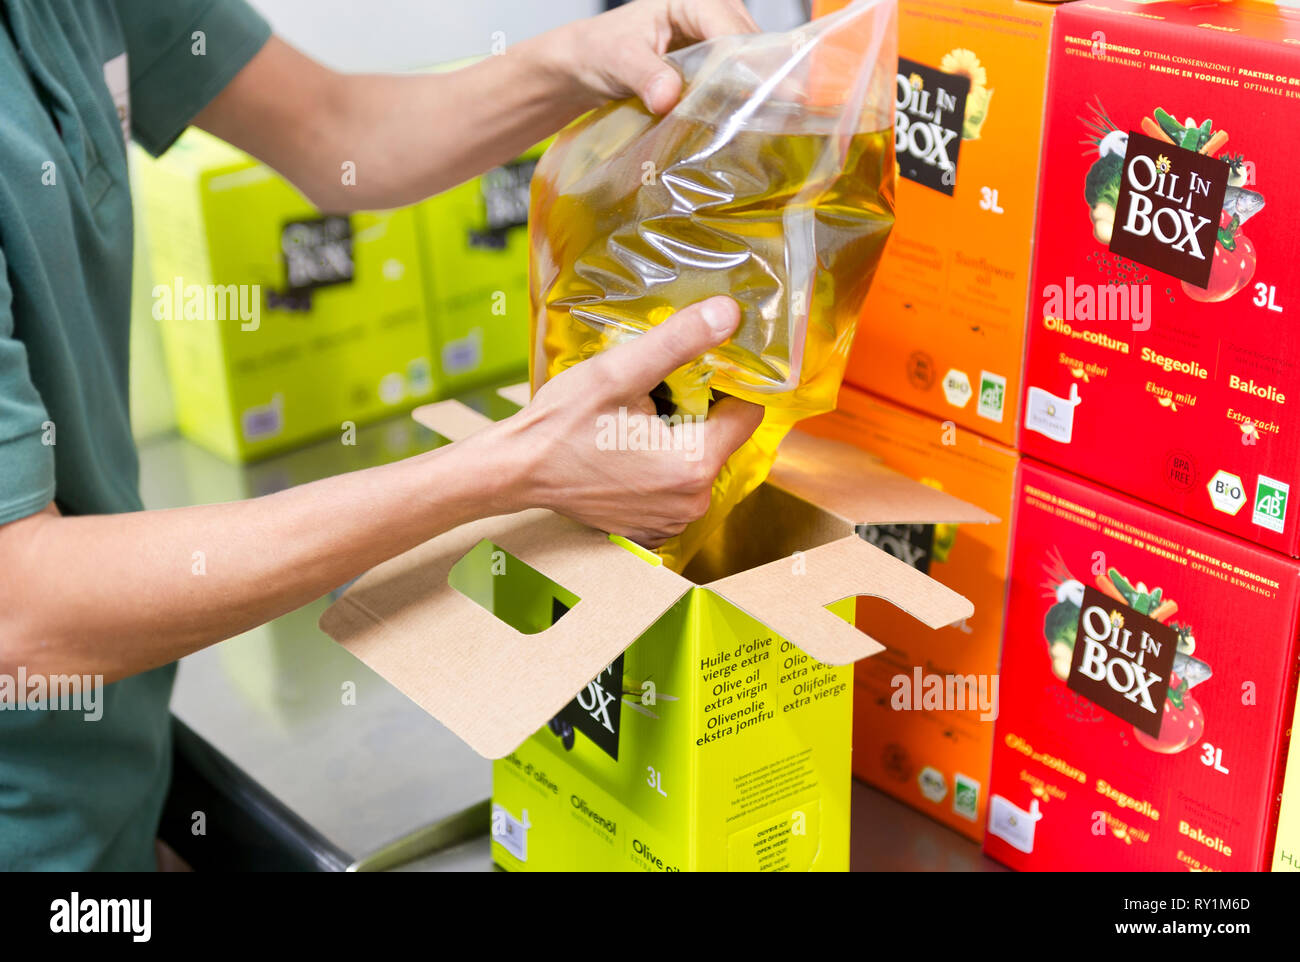 Production of ' Bio Planete ' organic oil, oil factory ' Moog ' in Bram (south of France). Packaging - Stock Image